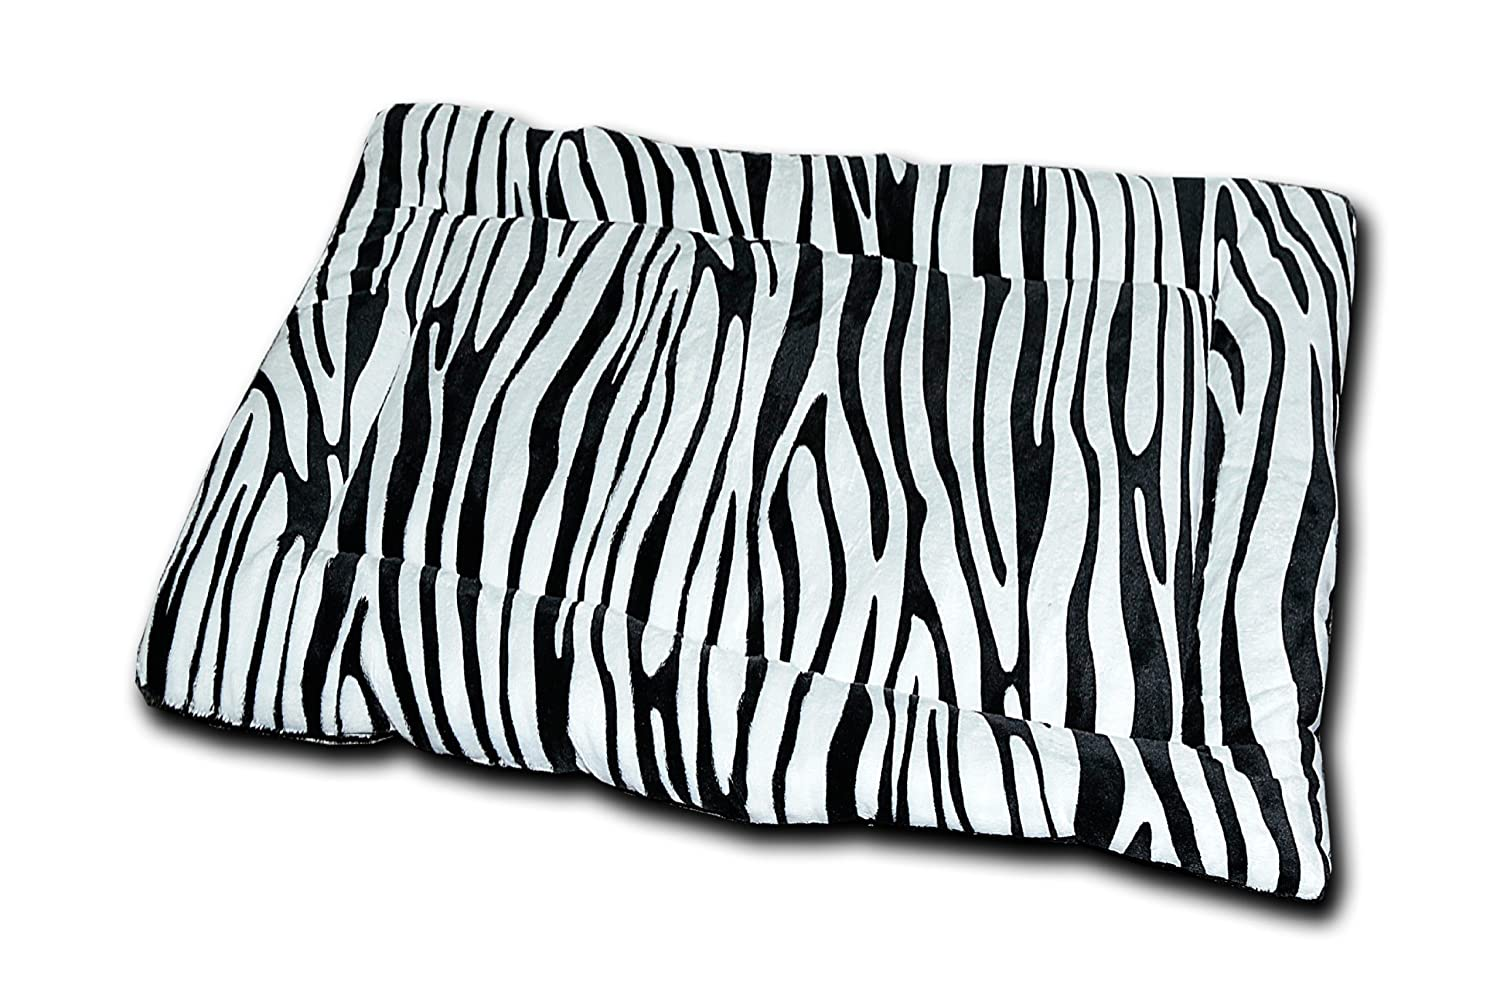 Black Zebra HappyCare Textiles HCT MAT-001 Printed Super Touch Micro Mink Dog and Pet Mat, Black Zebra